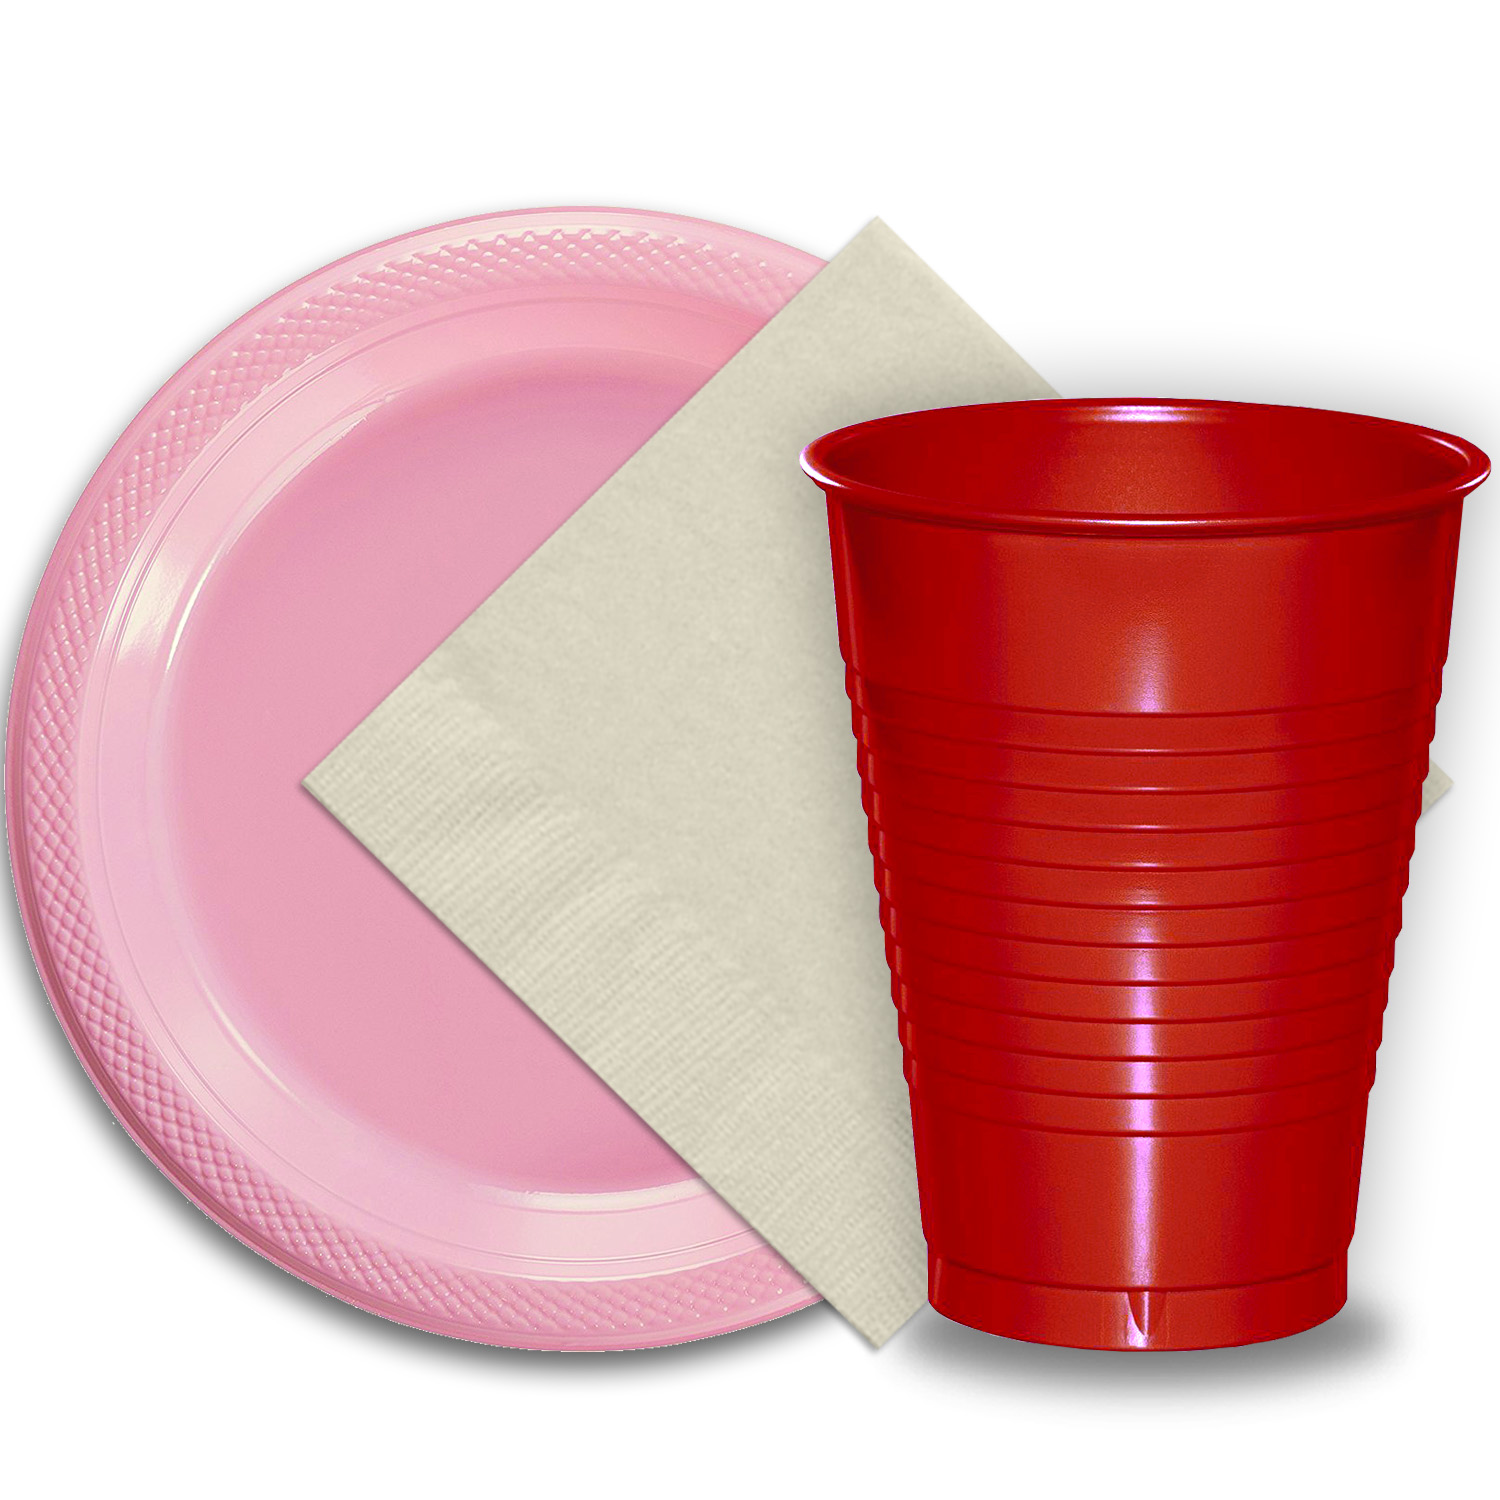 "50 Pink Plastic Plates (9""), 50 Red Plastic Cups (12 oz.), and 50 Ivory Paper Napkins, Dazzelling Colored Disposable Party Supplies Tableware Set for Fifty Guests."